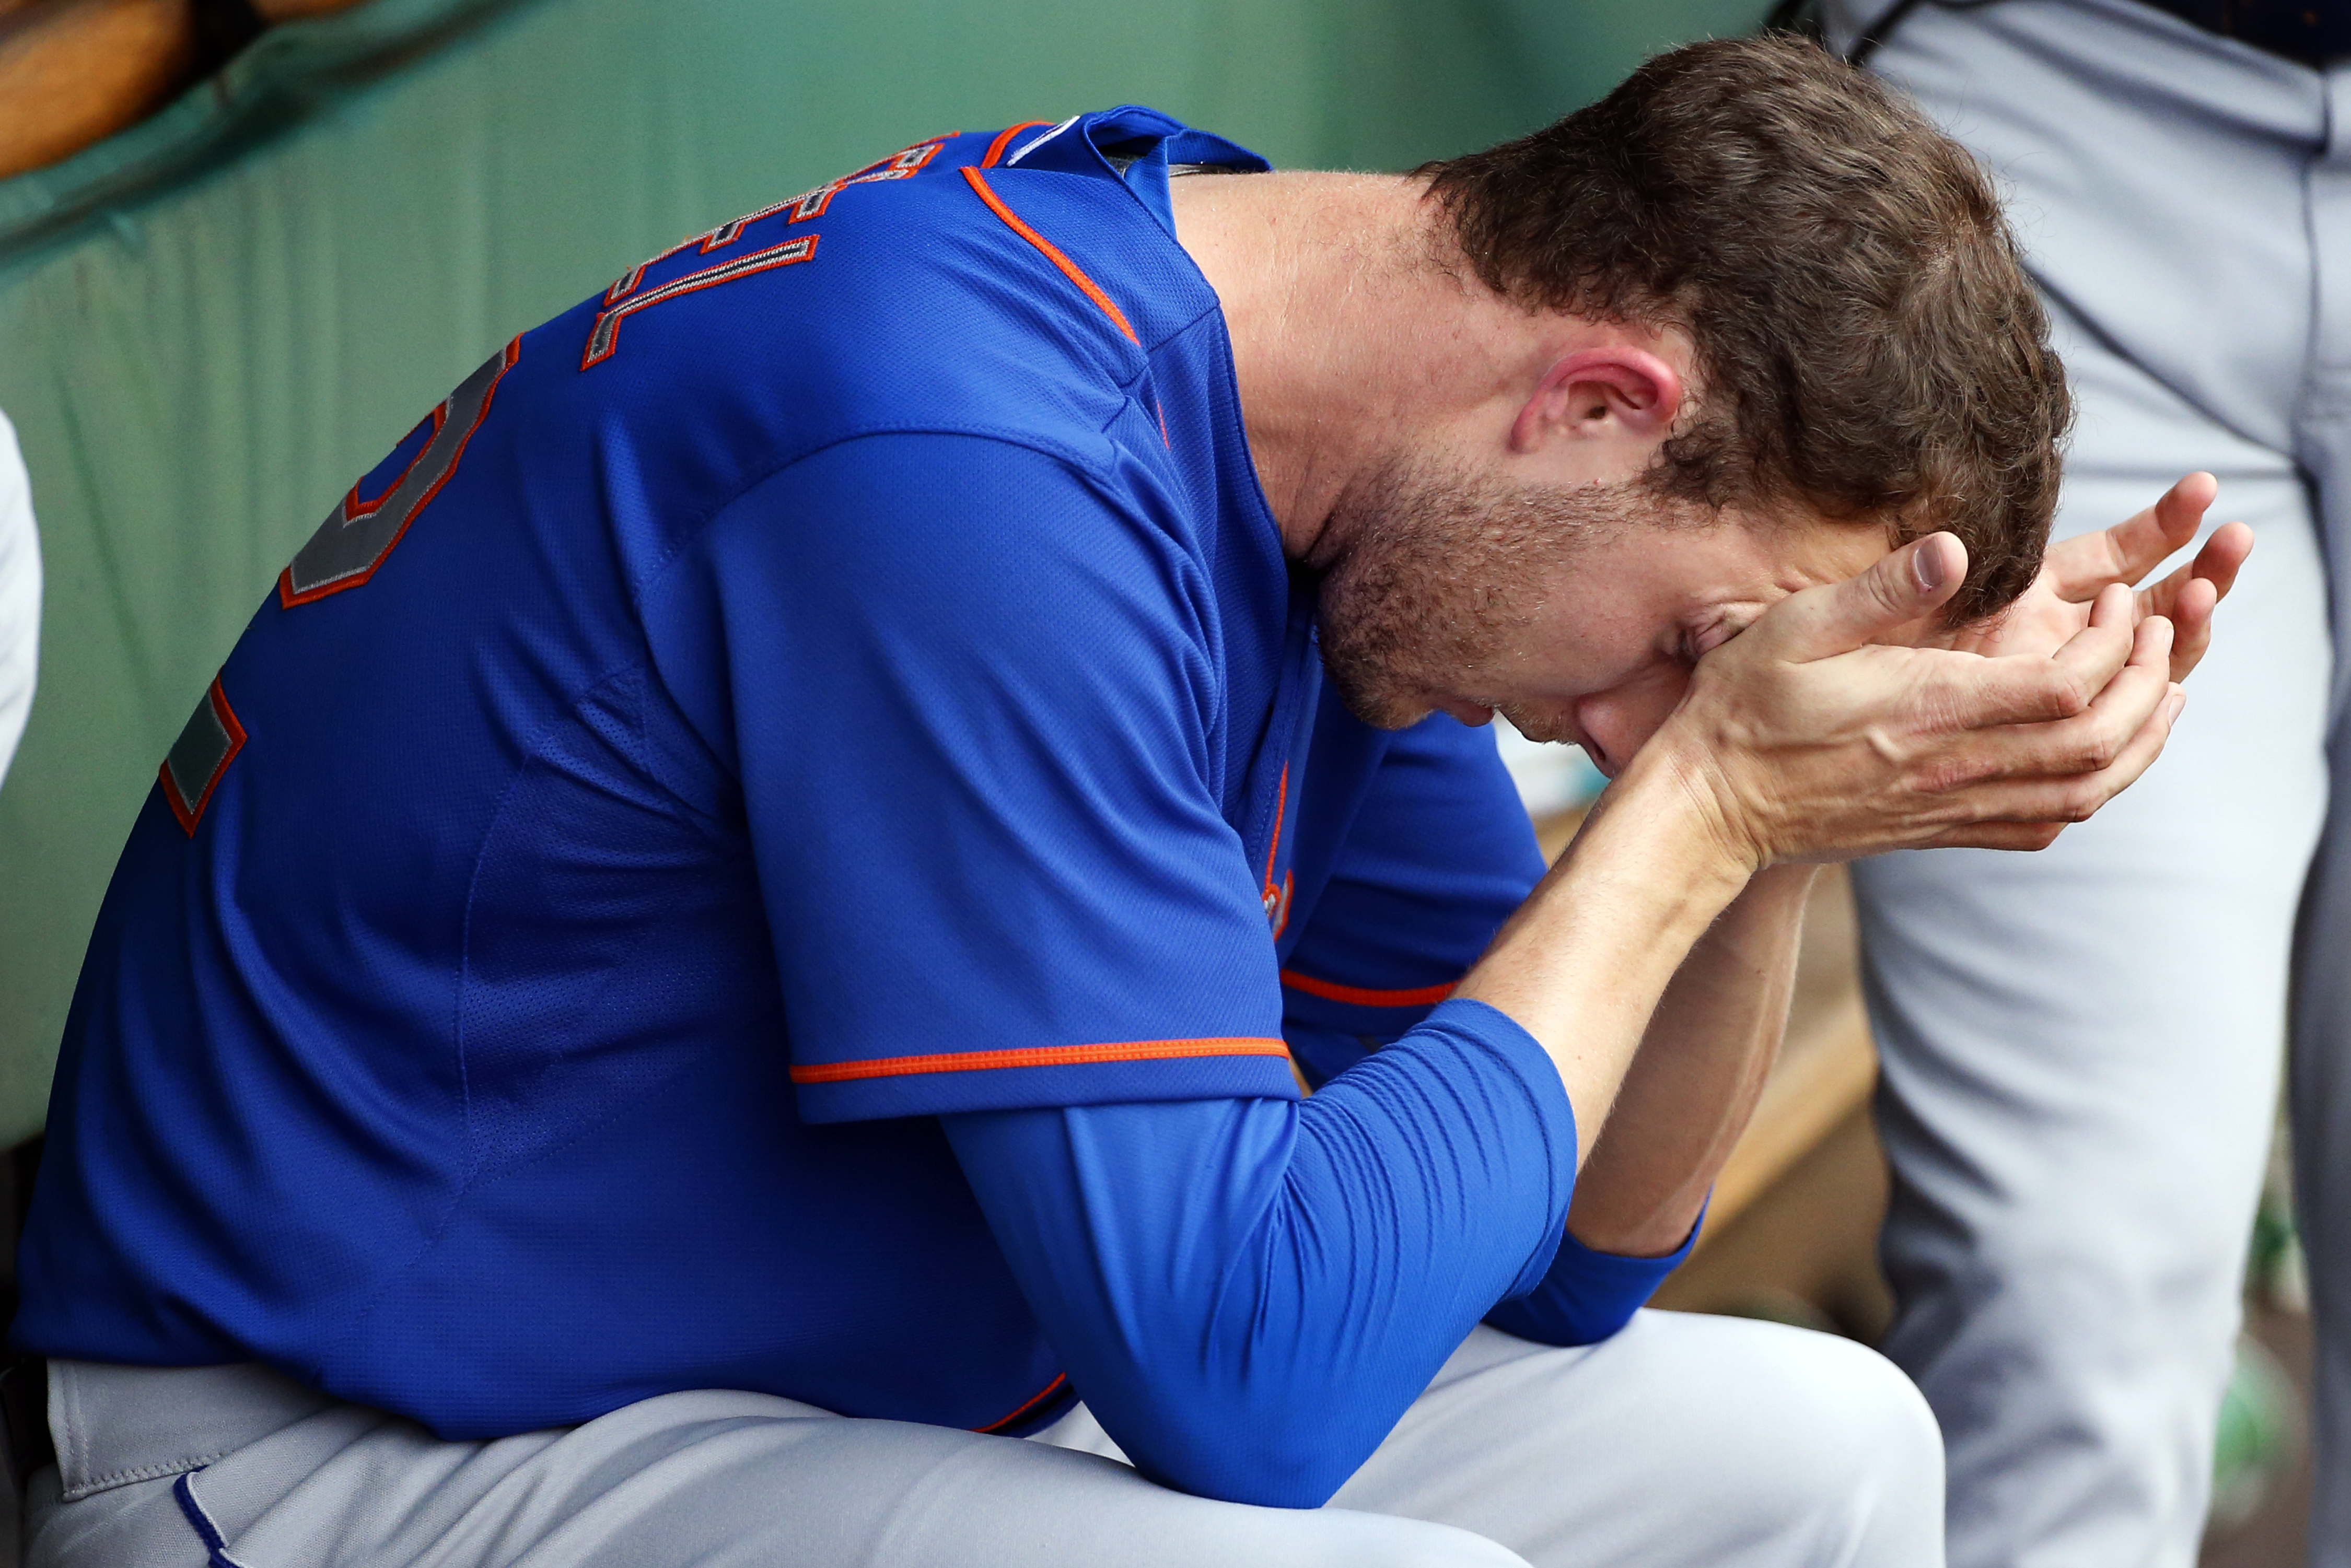 New York Mets relief pitcher Erik Goeddel sits in the dugout after giving up a three-run home run to Pittsburgh Pirates' Starling Marte in the sixth inning of a baseball game in Pittsburgh, Sunday, May 24, 2015. (AP Photo/Gene J. Puskar)